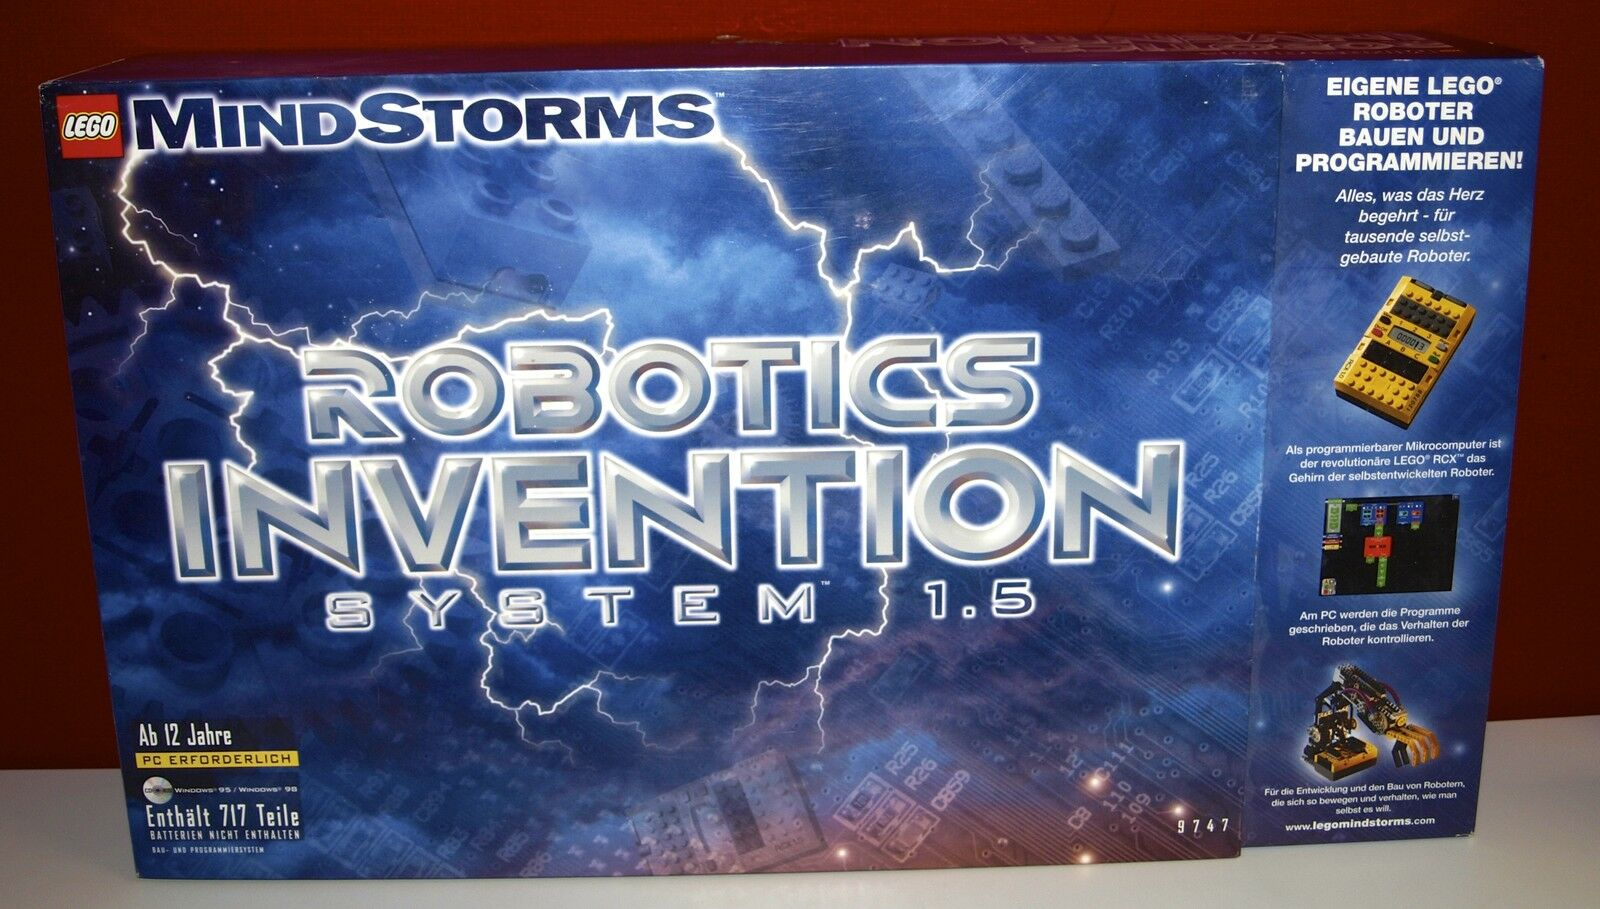 Lego Mindstorms RCX 9747 Robotics Invention System,Version 1.5, OBA,OVP,BOX,TOP